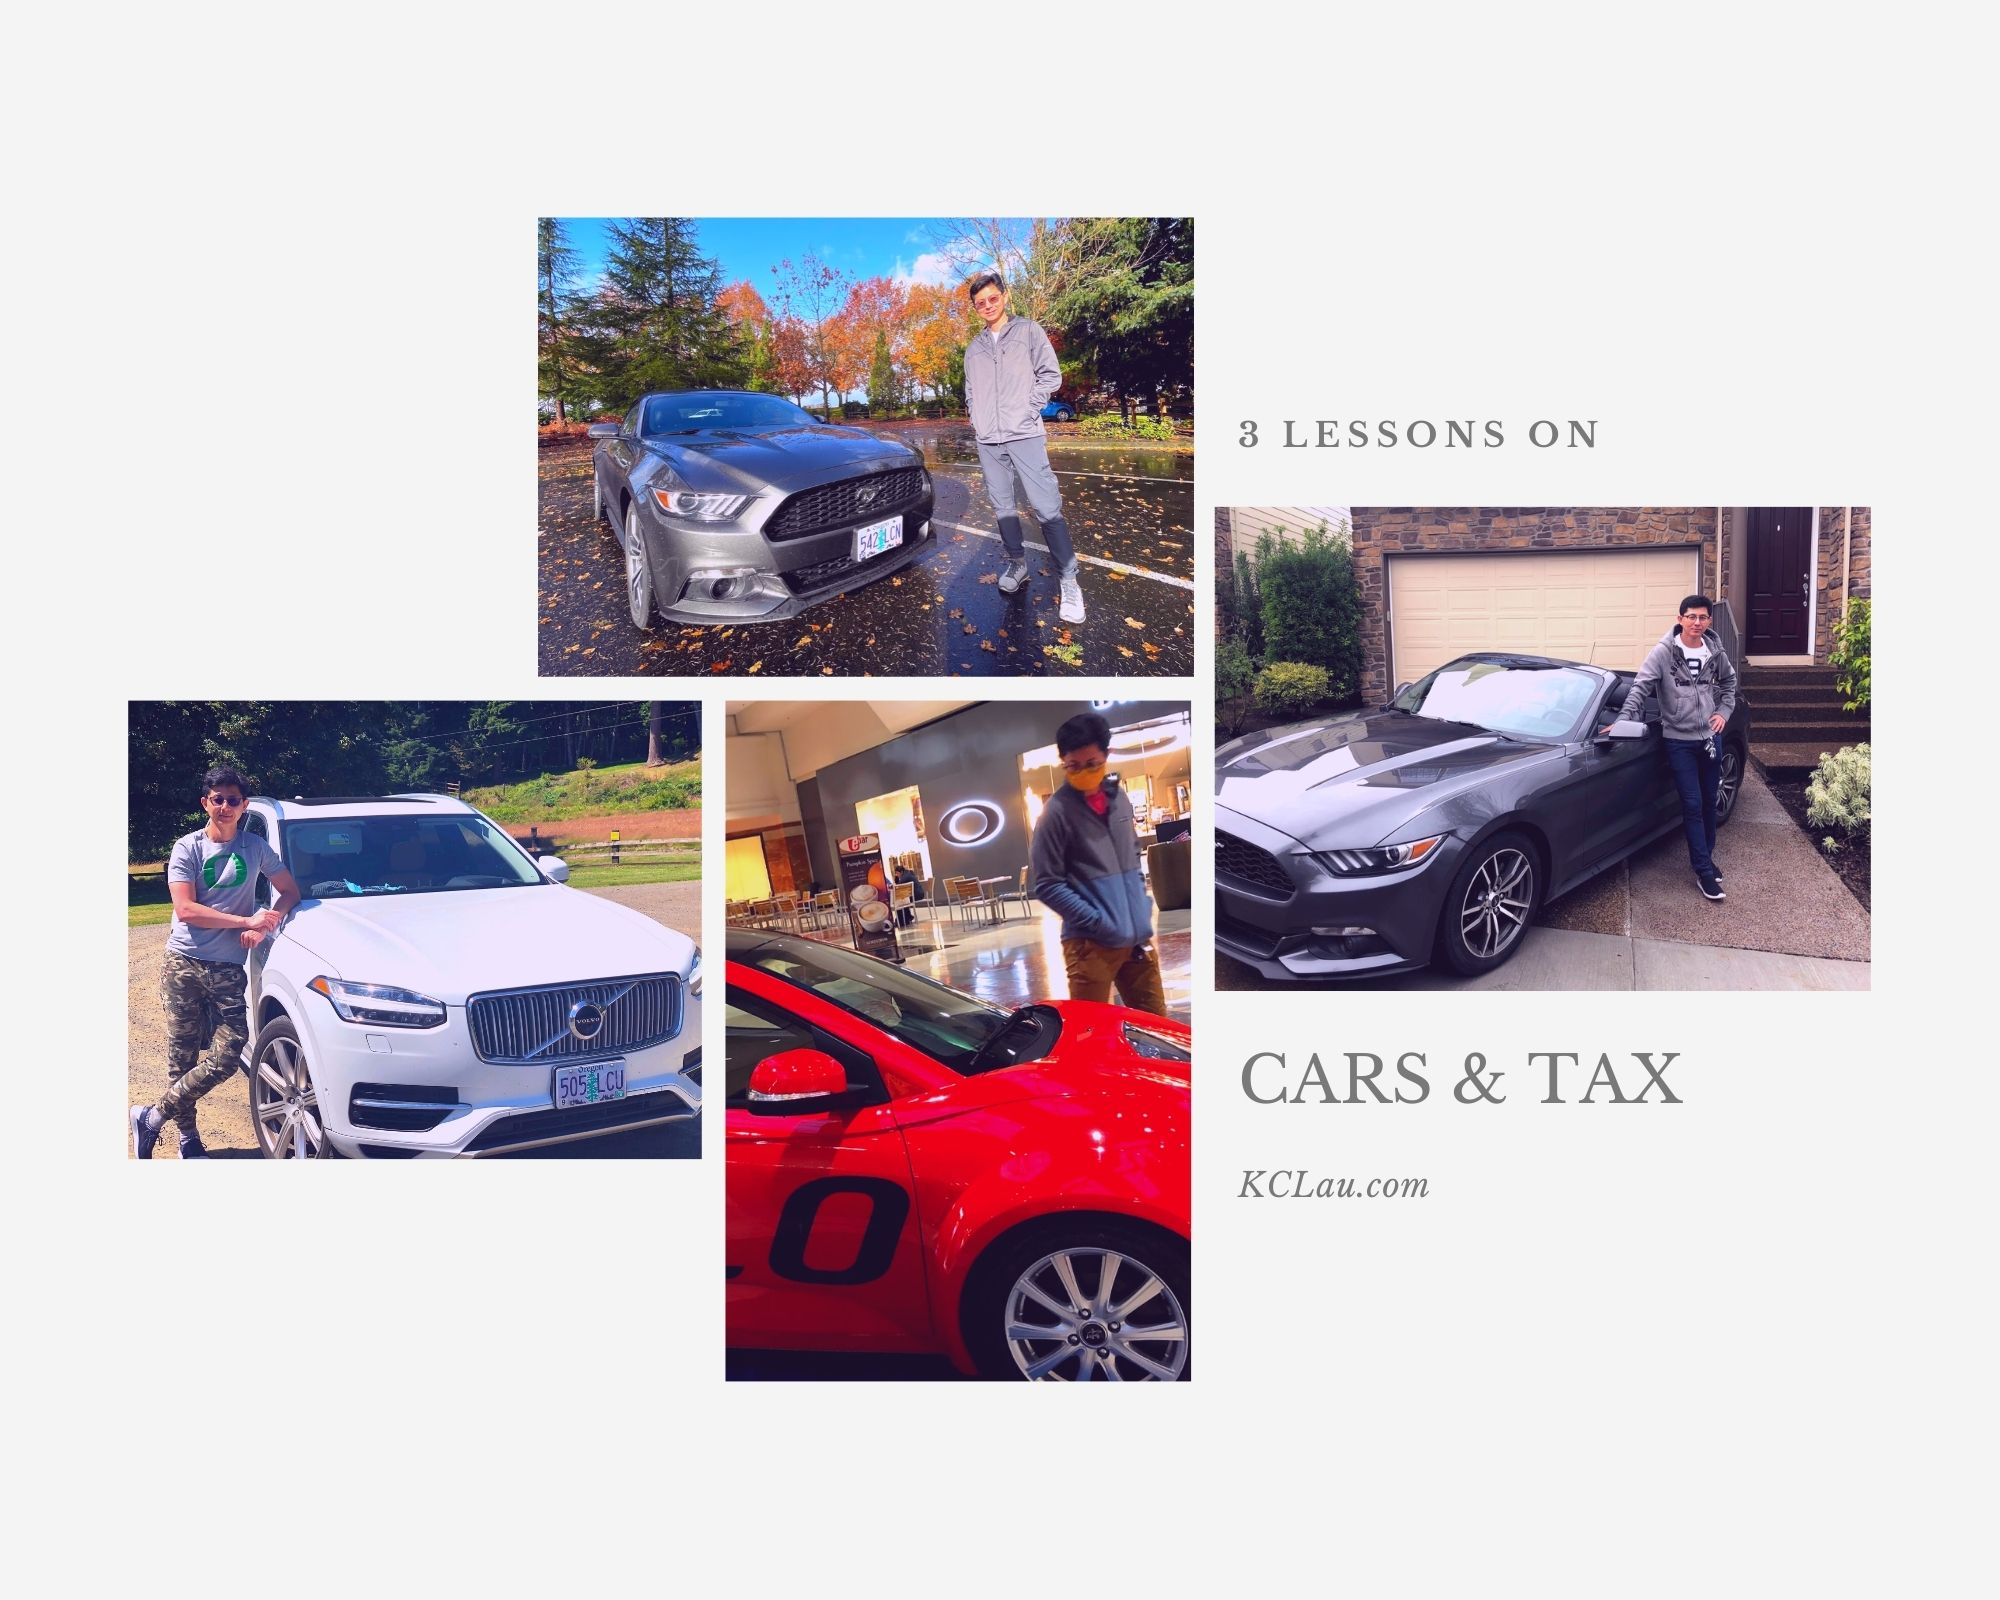 3 Lessons on Cars and Tax